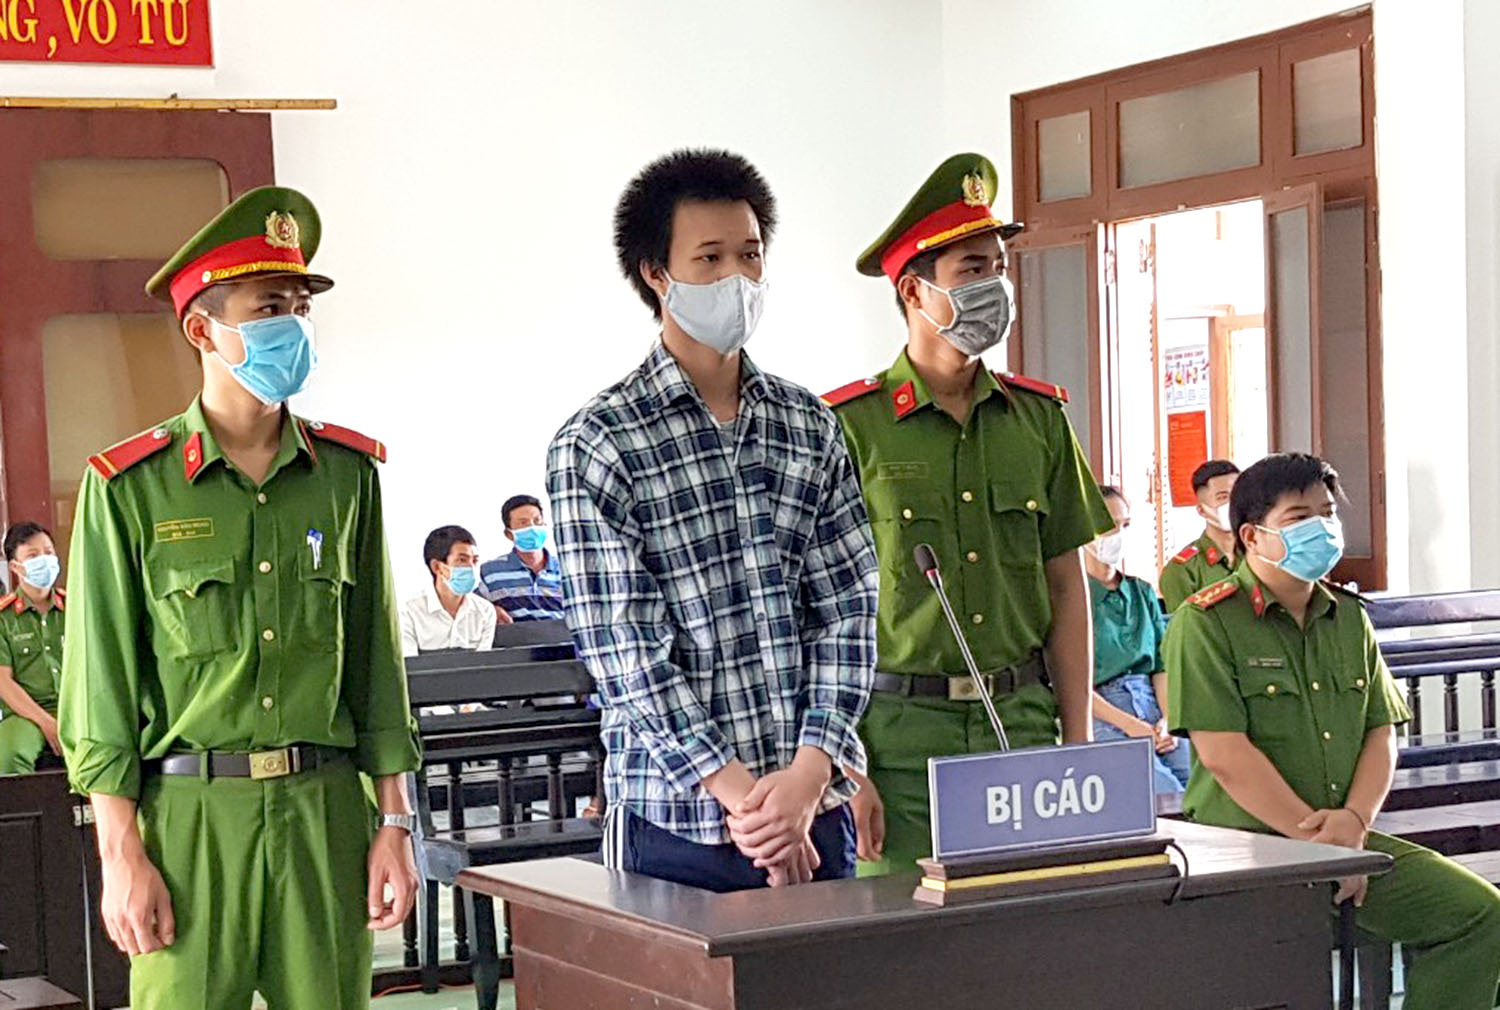 Vietnamese man sentenced to death for murdering, raping 13-year-old girl